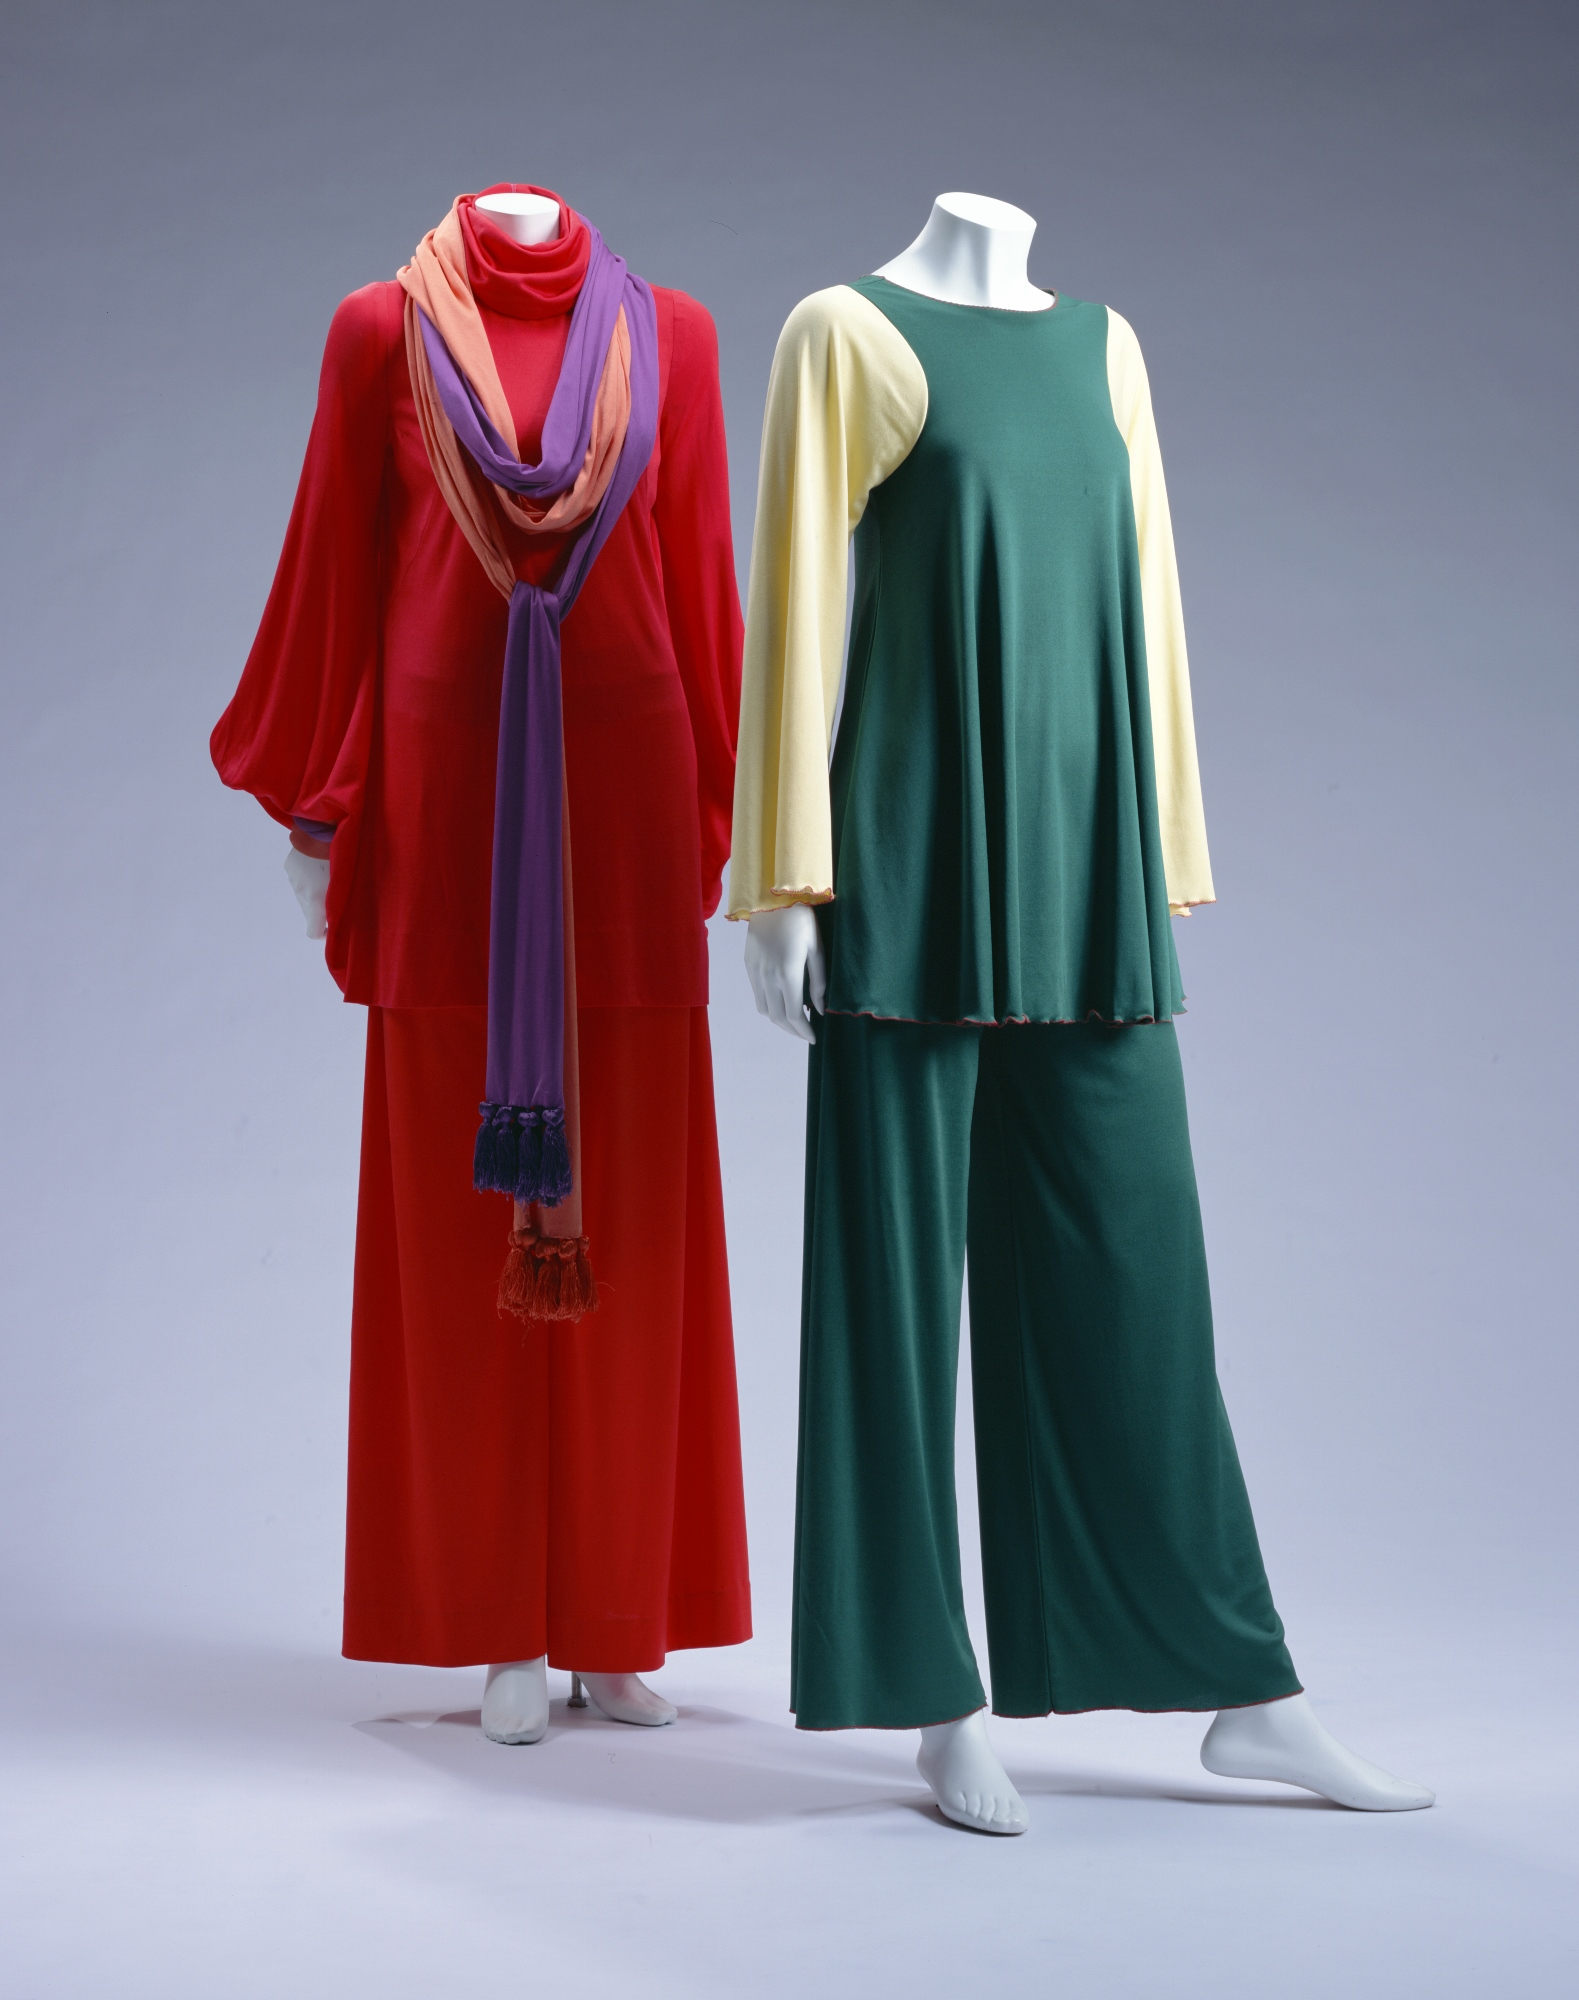 Tunic, Pants [Left] Tunic, Pants [Right]